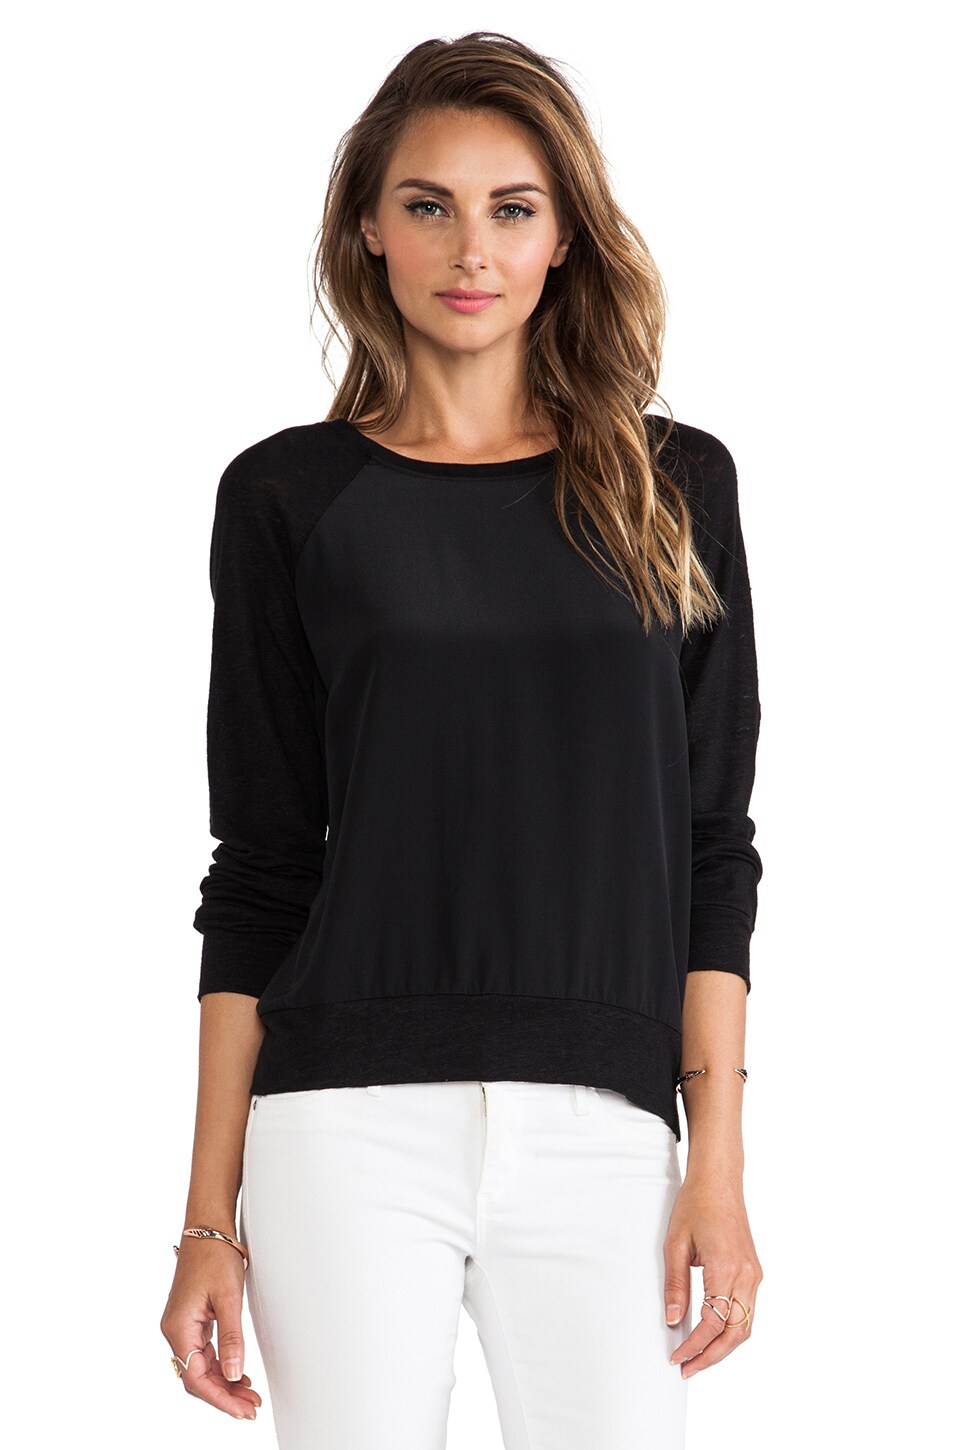 AG Adriano Goldschmied Long Sleeve Swirl Crew in True Black